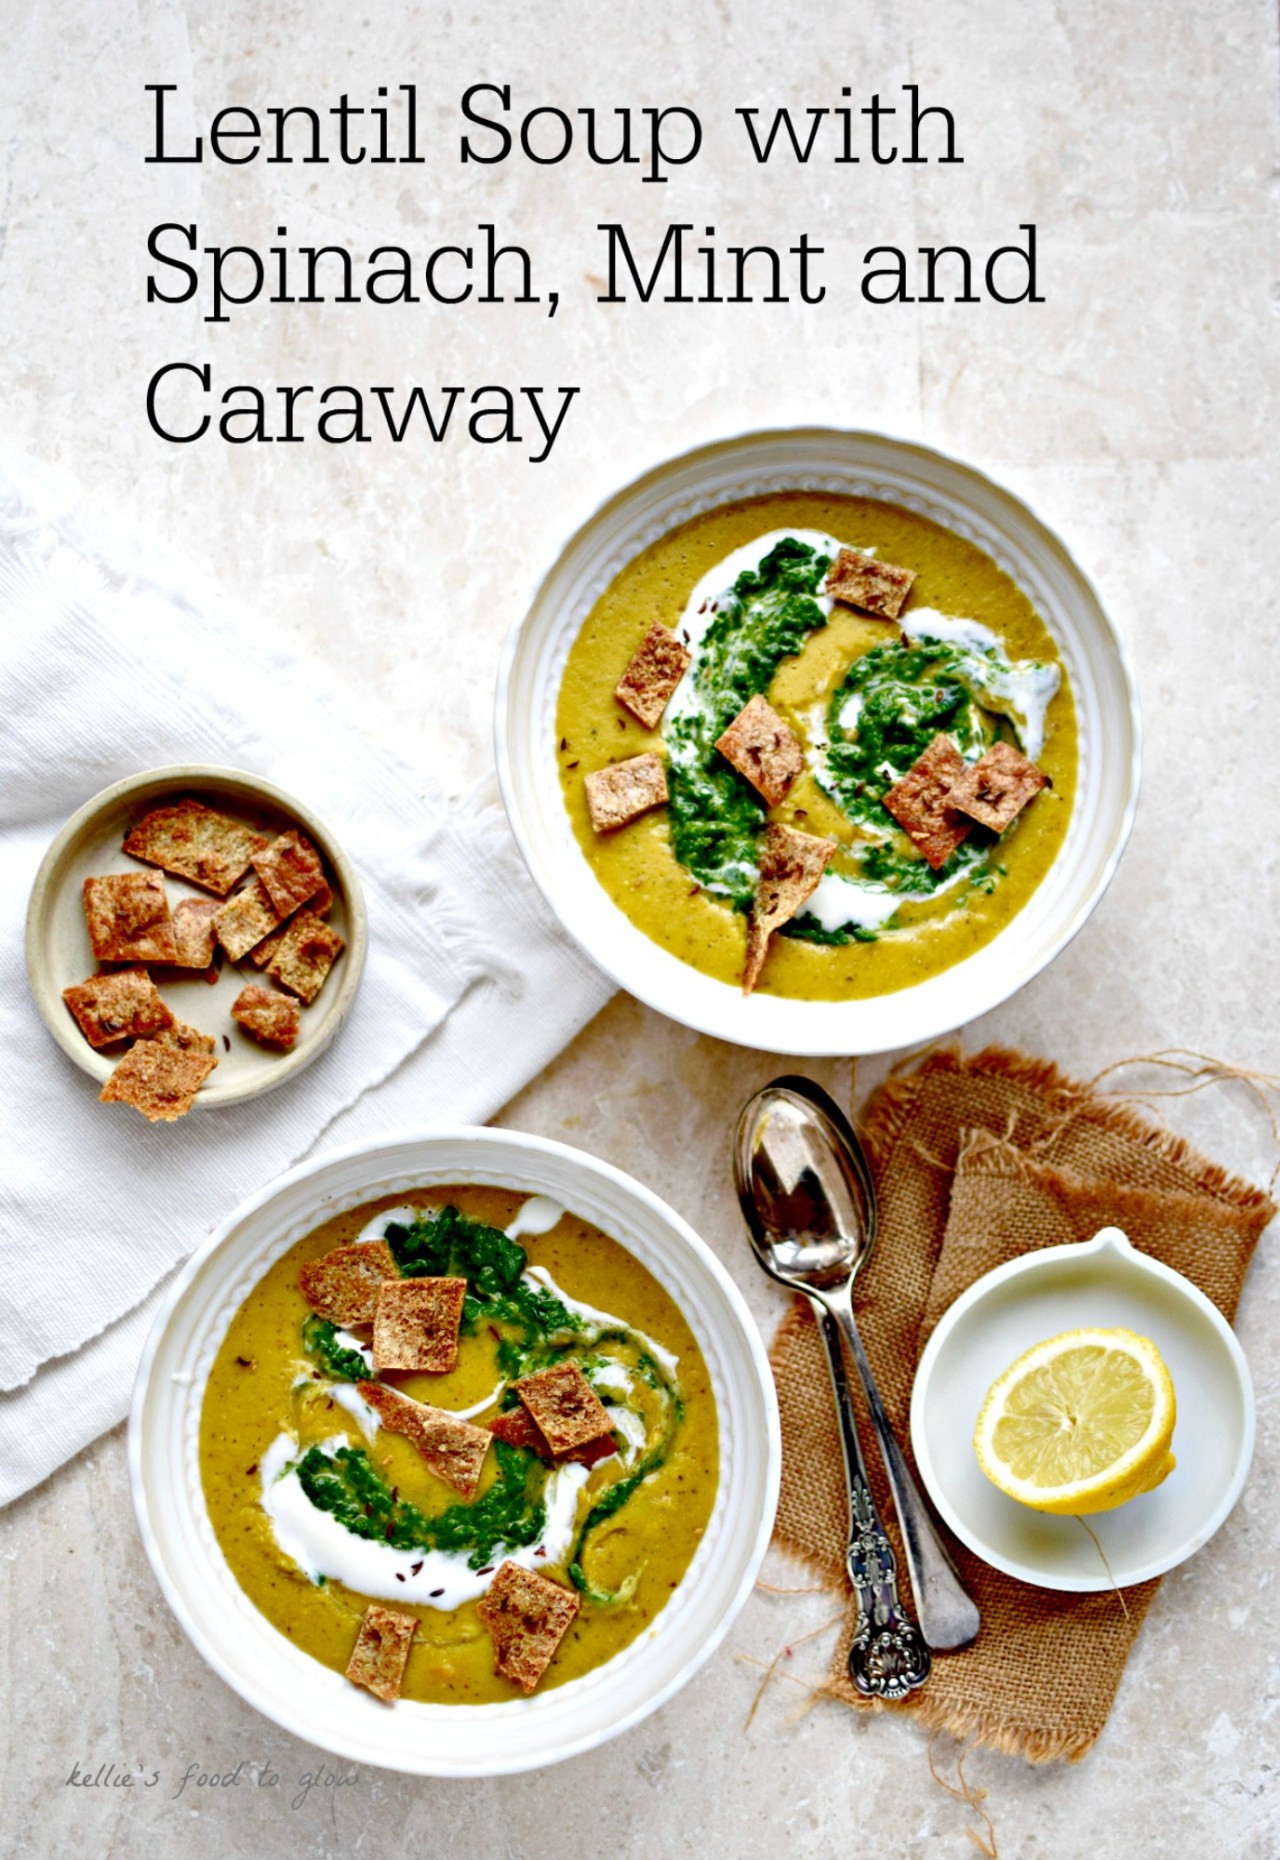 A nourishing, easy and slightly unusual version of comfort food staple, lentil soup. Top with pureed spinach and caraway pitta croutons for a dinner party version. Naturally vegan and perfect for lunch. Add optional grains to this Mediterranean diet soup while it cooks for a main meal with staying power.